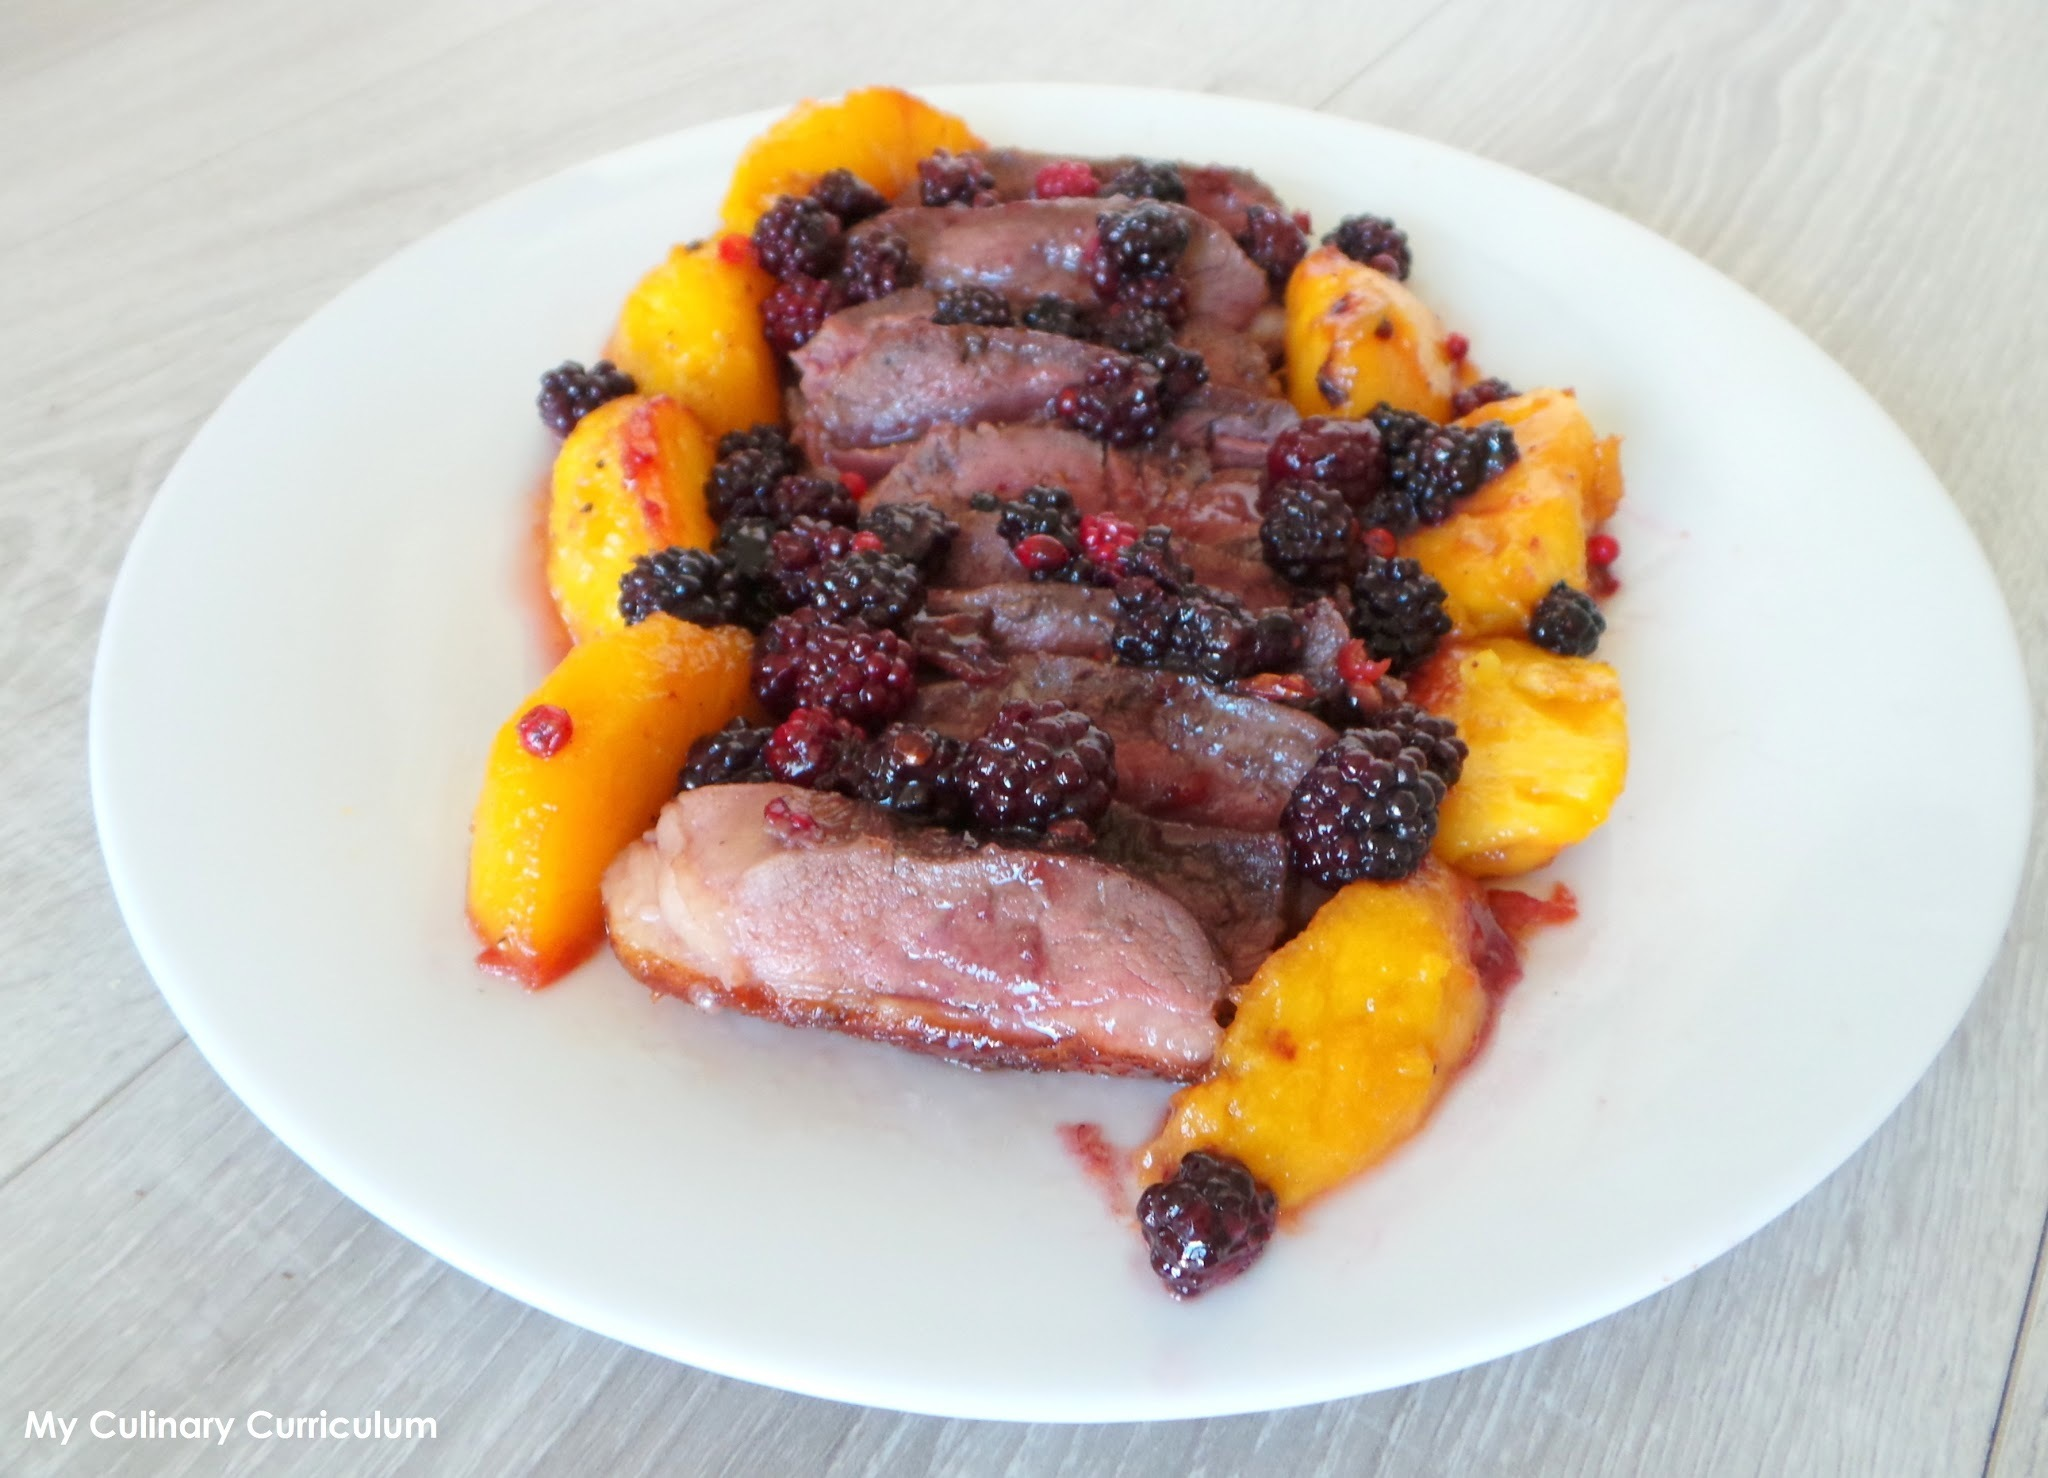 Magrets de canard aux pêches, mûres et sirop d'érable (Duck breast with peaches, blackberries and maple syrup)